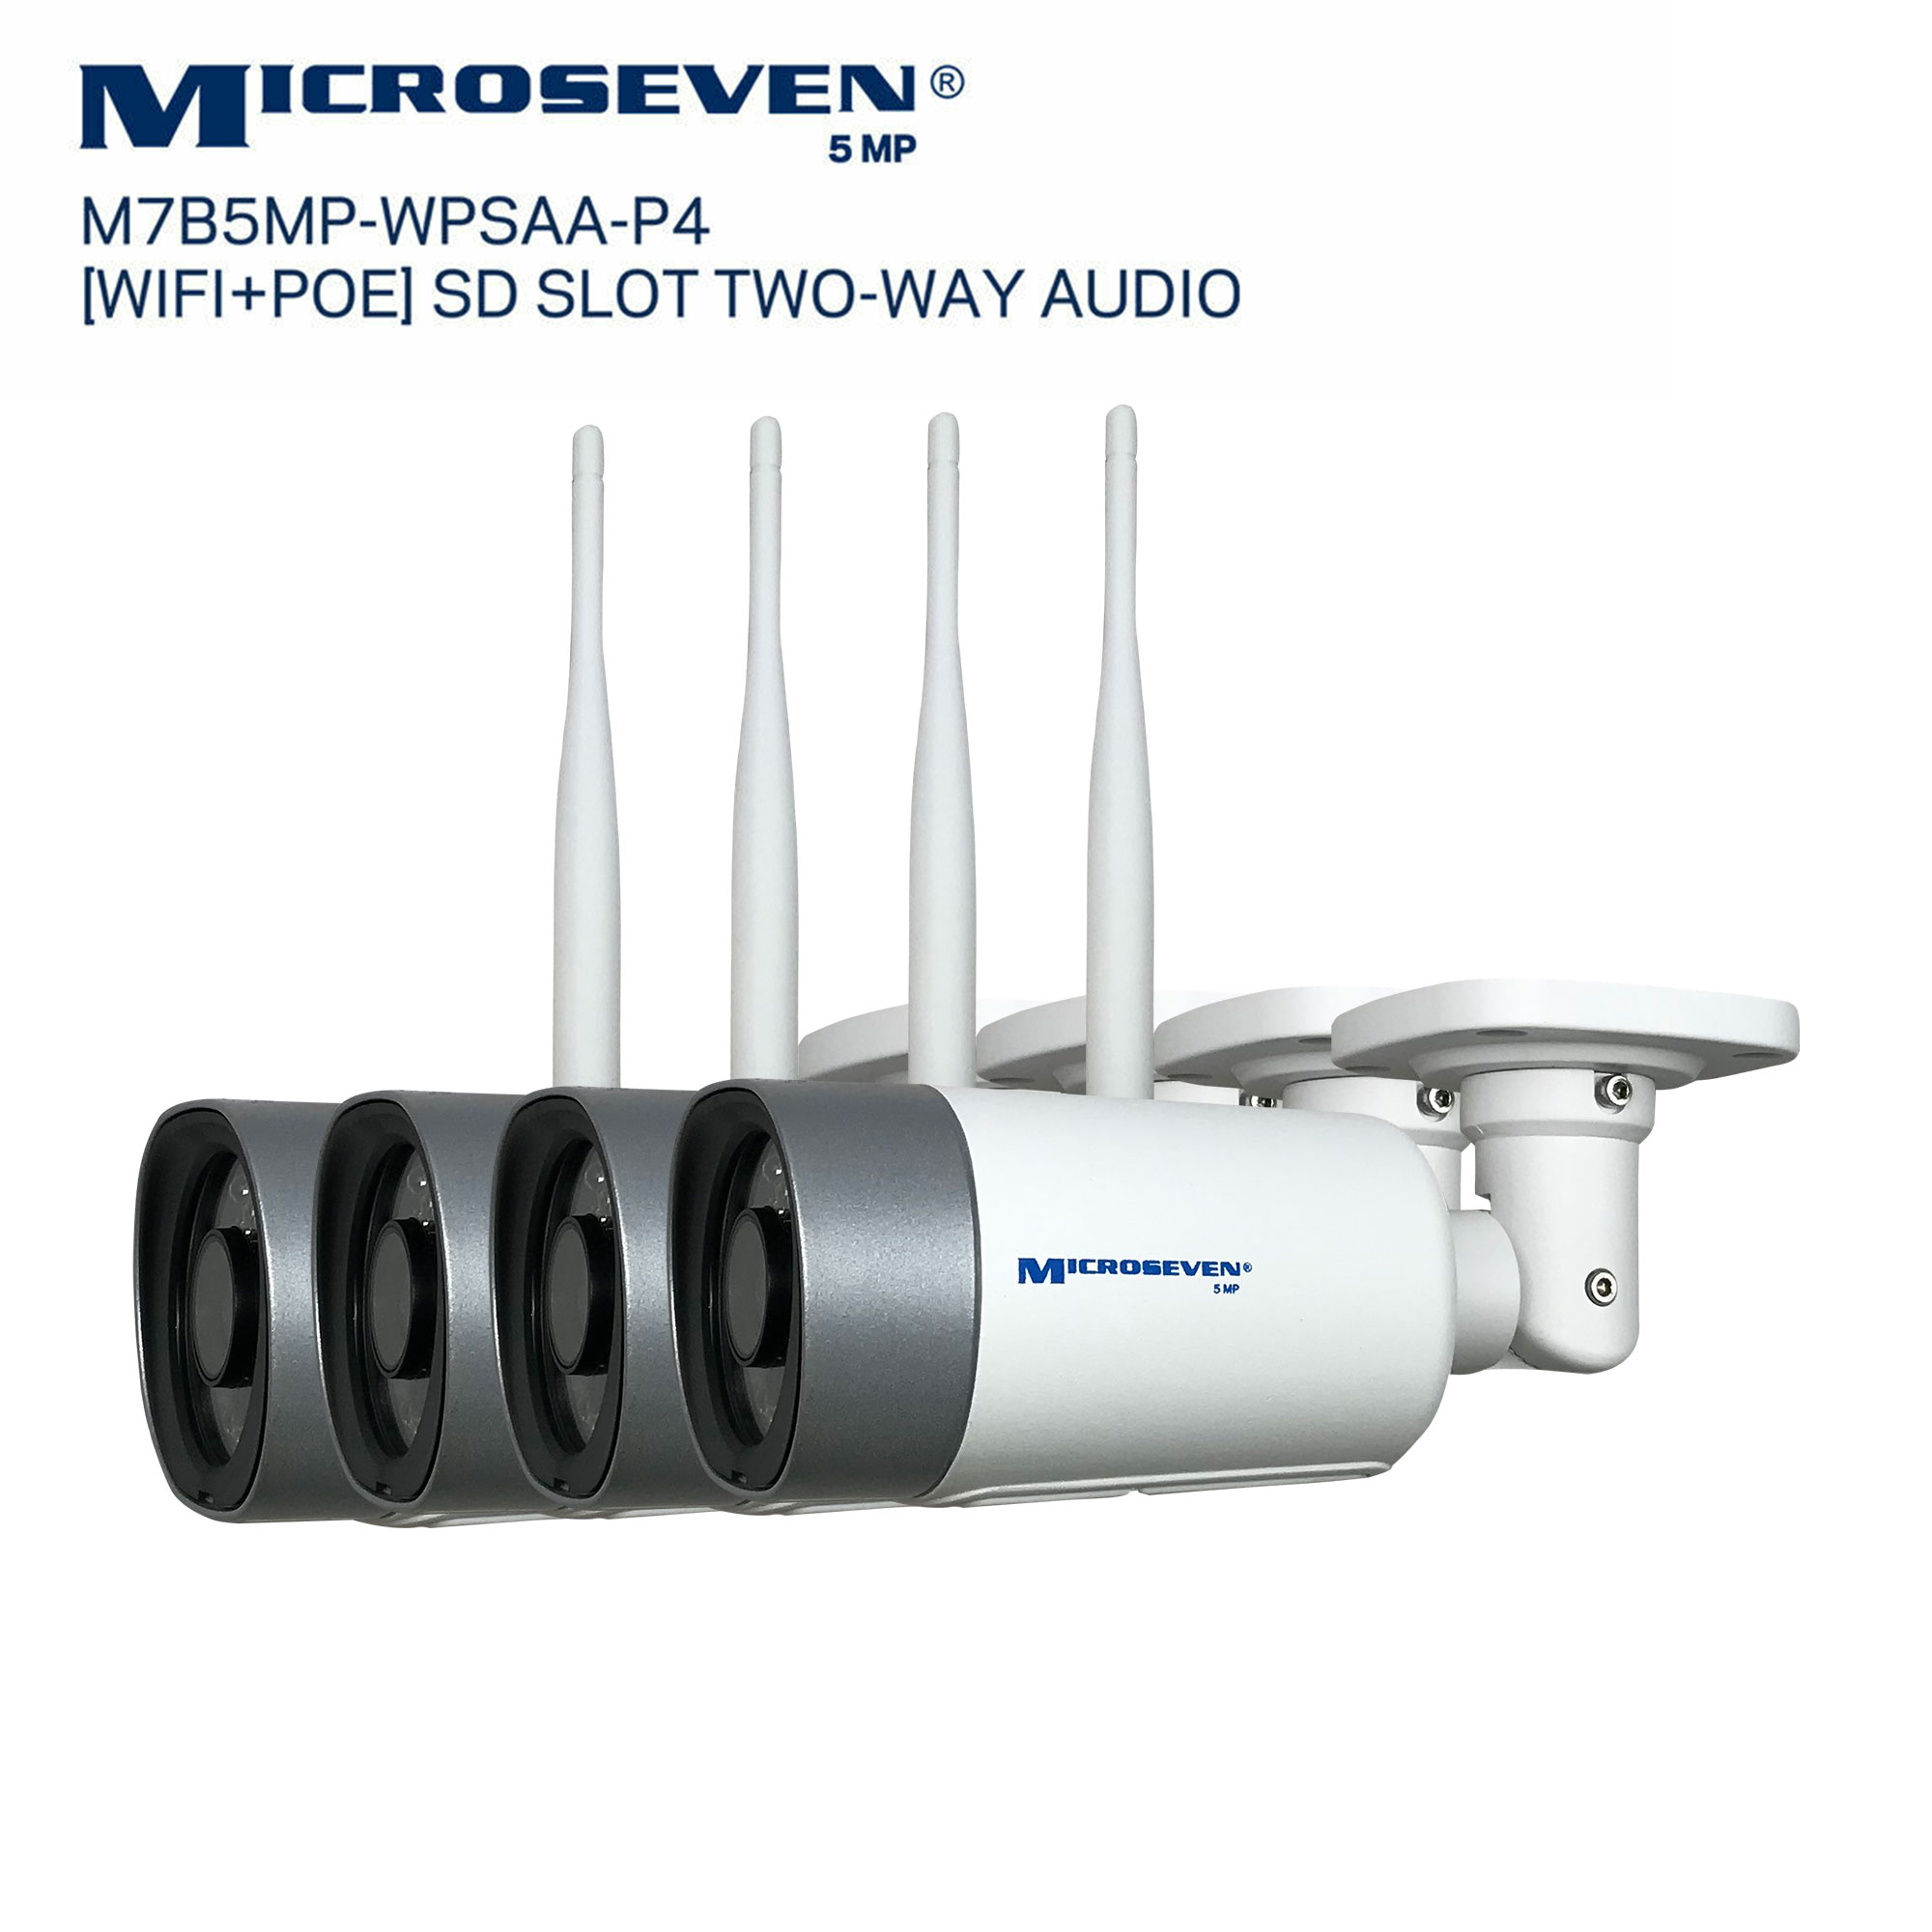 "Microseven M7B5MP-WPSAA-P4 Microseven Open Source 5MP (2560x1920) Ultra HD [WiFi + PoE] All in One SONY 1/2.8"" Chipset CMOS 3.6mm 5MP Lens Two-Way Audio with Built-in Amplified Microphone and Speaker plug and Play ONVIF, IR Light (On/Off in the APP) Security Outdoor IP Camera, Motion Detection, 128GB SD Slot, Day & Night, Web GUI & Apps, VMS (Video Management System) Free 24hr M7 Cloud Storage, Works with Alexa"